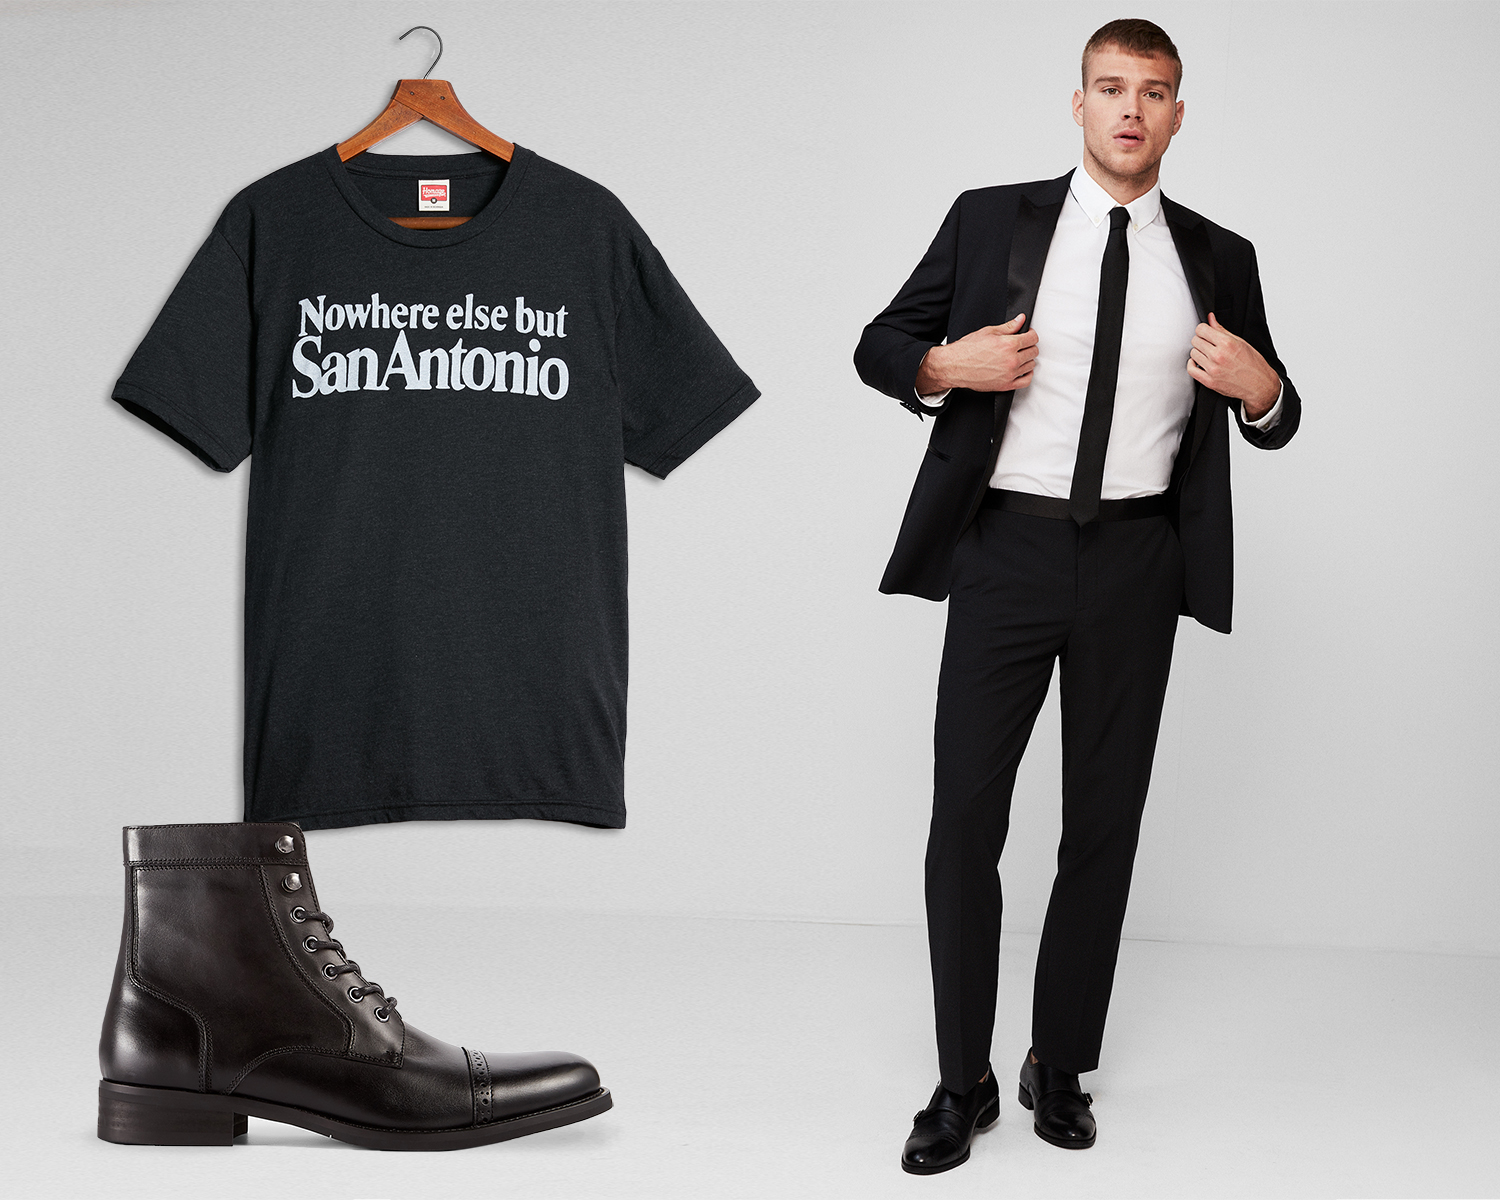 mens-performance-stretch-suit-homage-graphic-tee-lace-up-boots